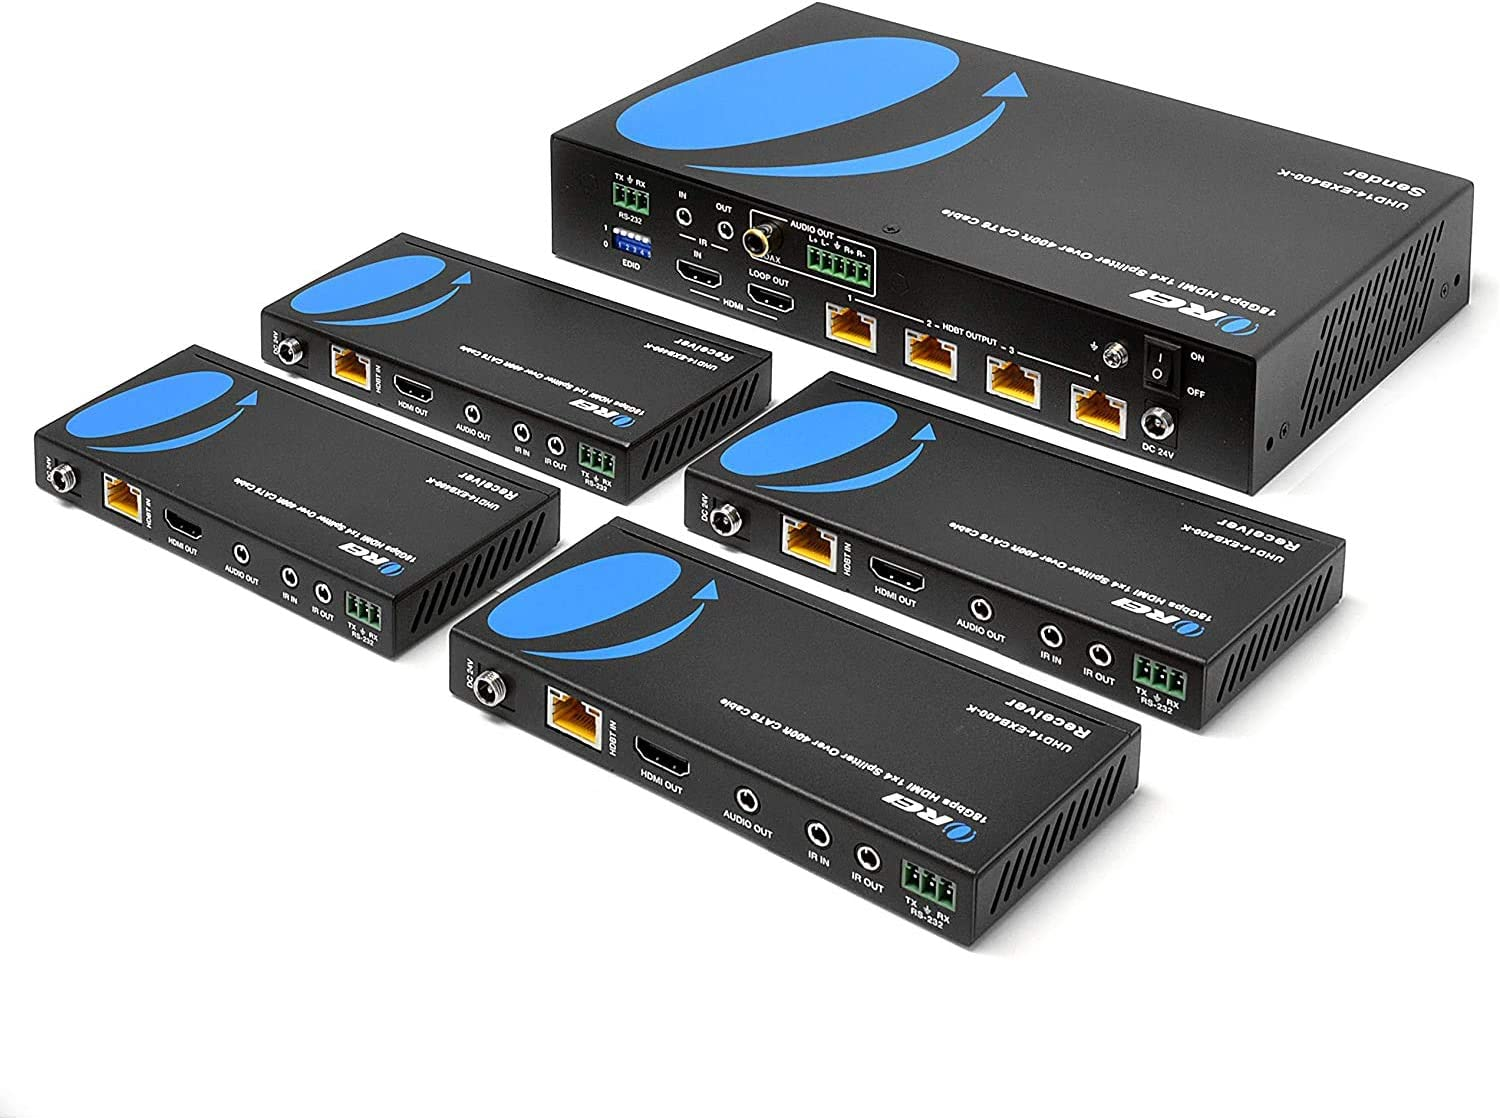 1x4 HDMI Extender Splitter HDBaseT 4K by OREI Multiple Over Single Cable CAT6/7 4K@60Hz 4:4:4 HDCP 2.2 With IR Remote EDID Management, HDR - Up to 400 Ft - Loop Out - Low Latency - Full Support